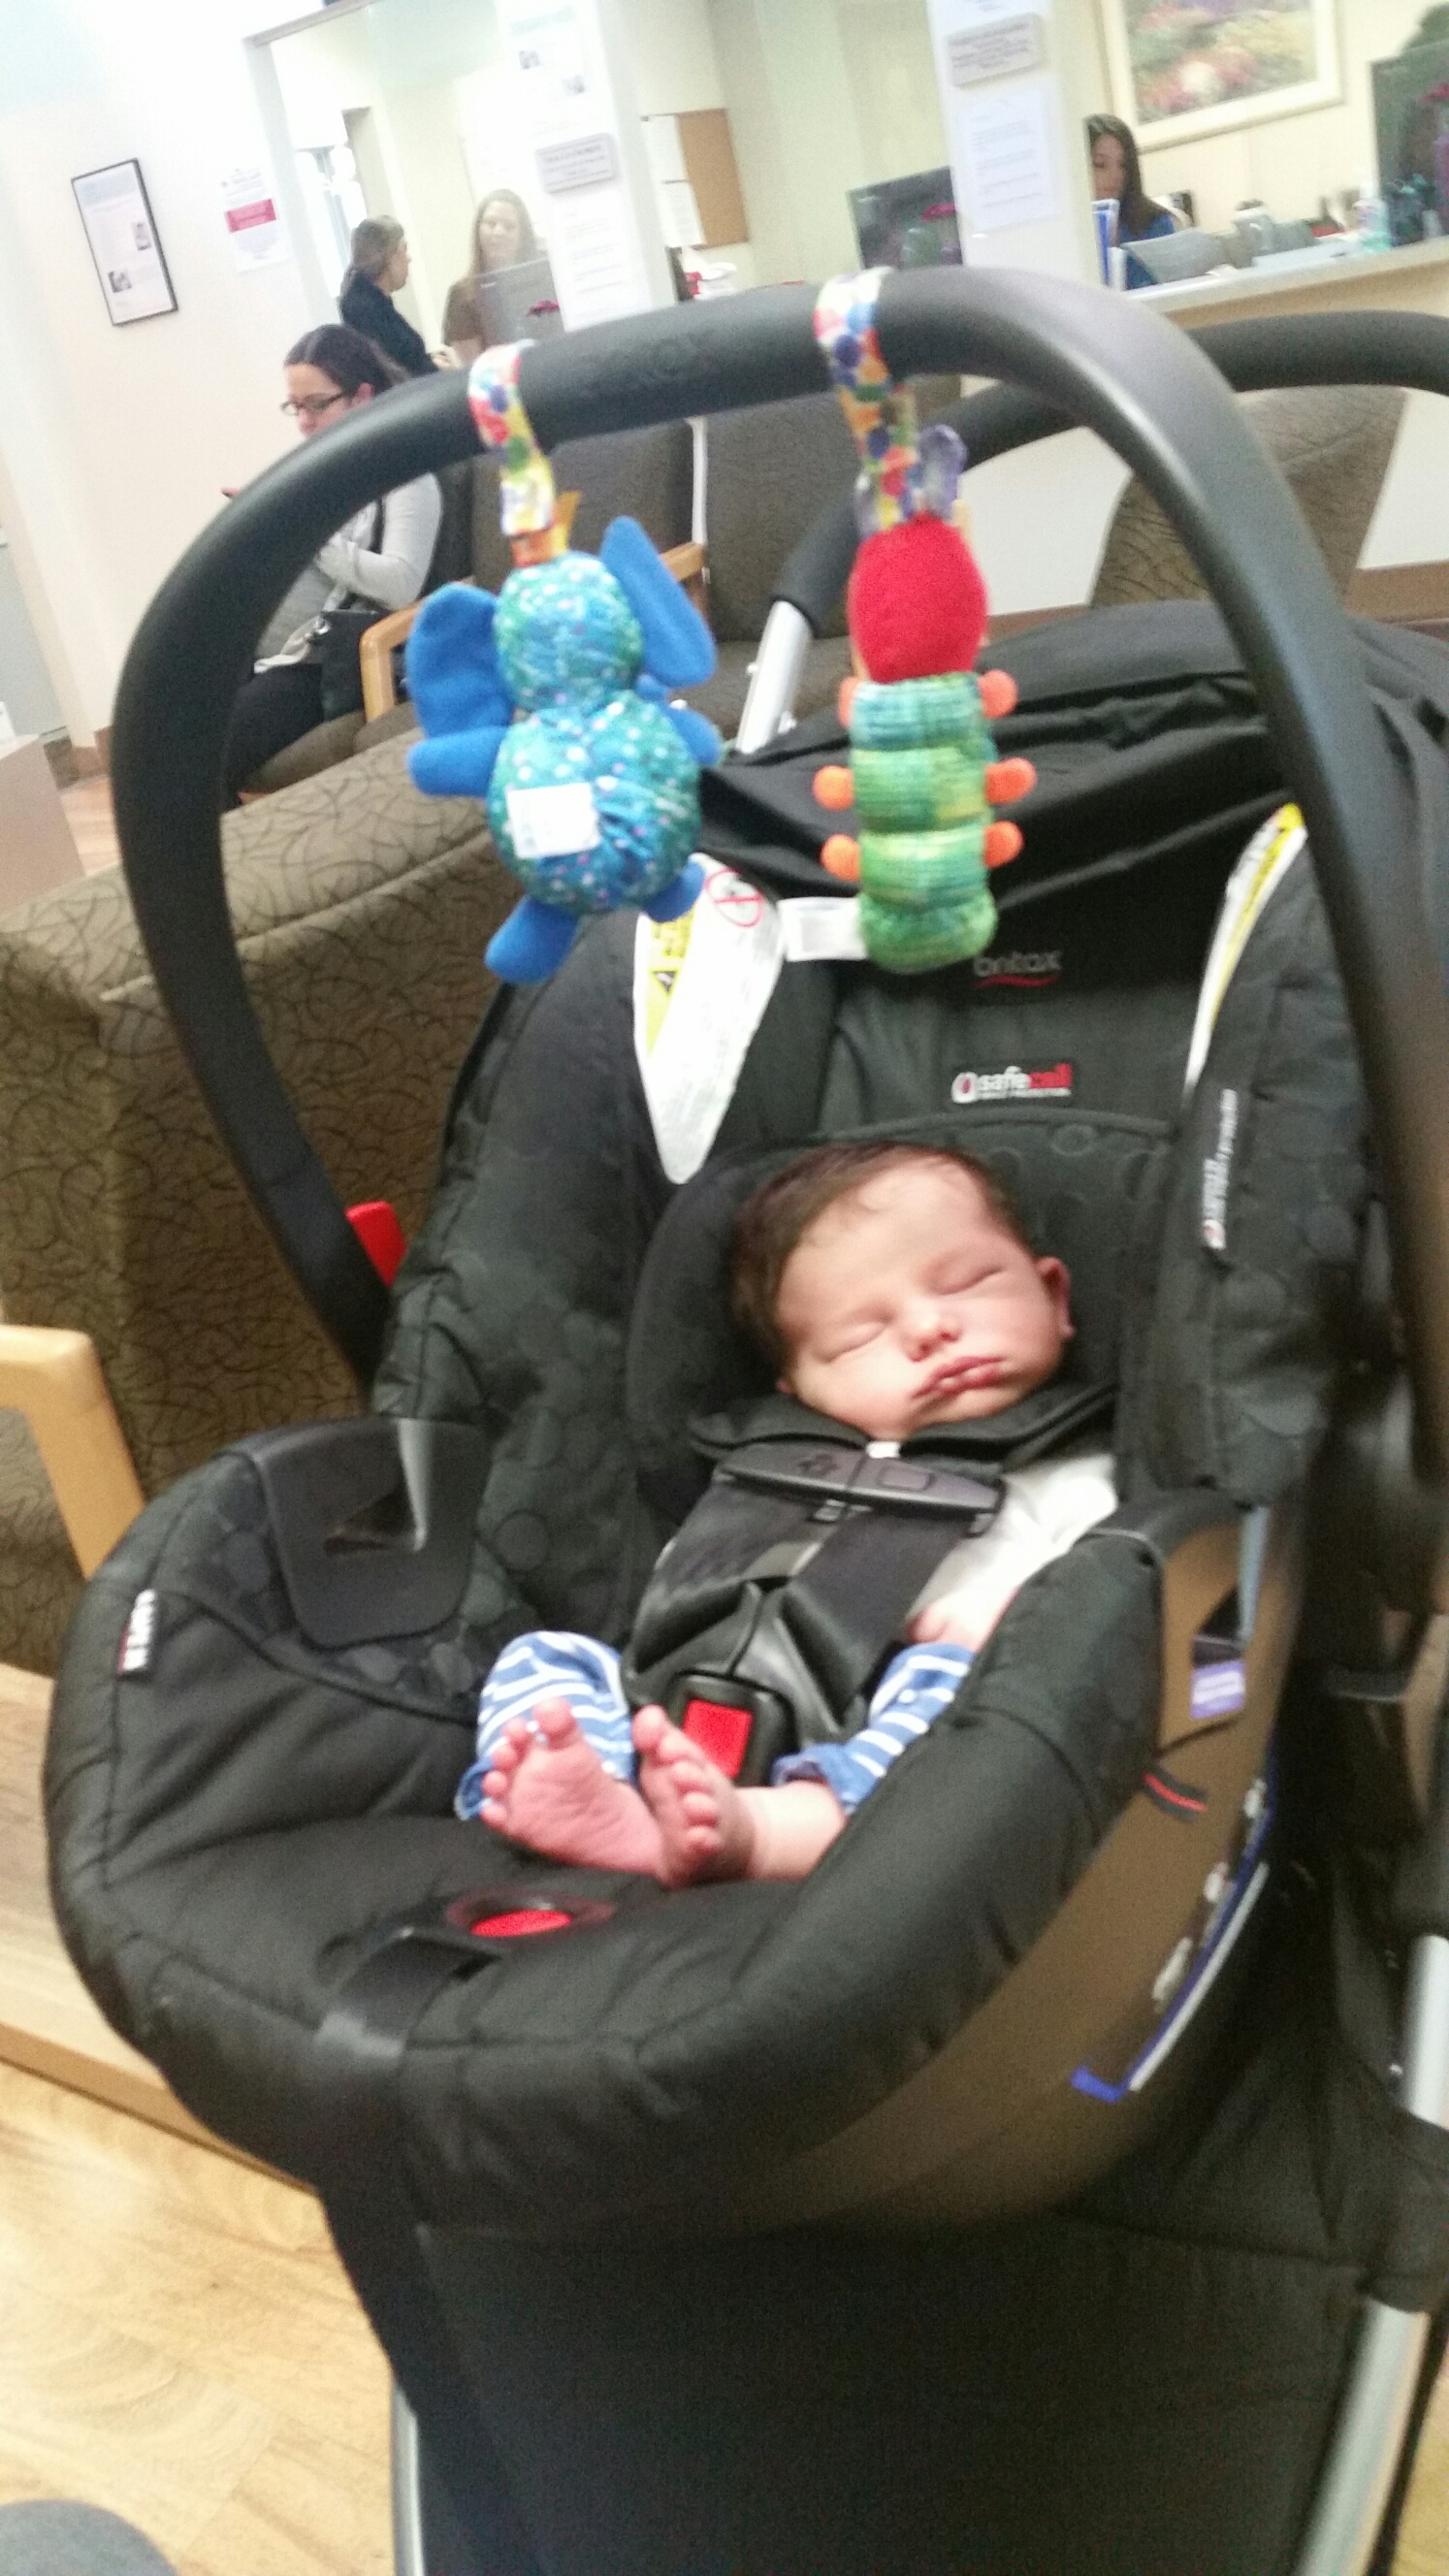 Just chillin' at mommy's doctors office.